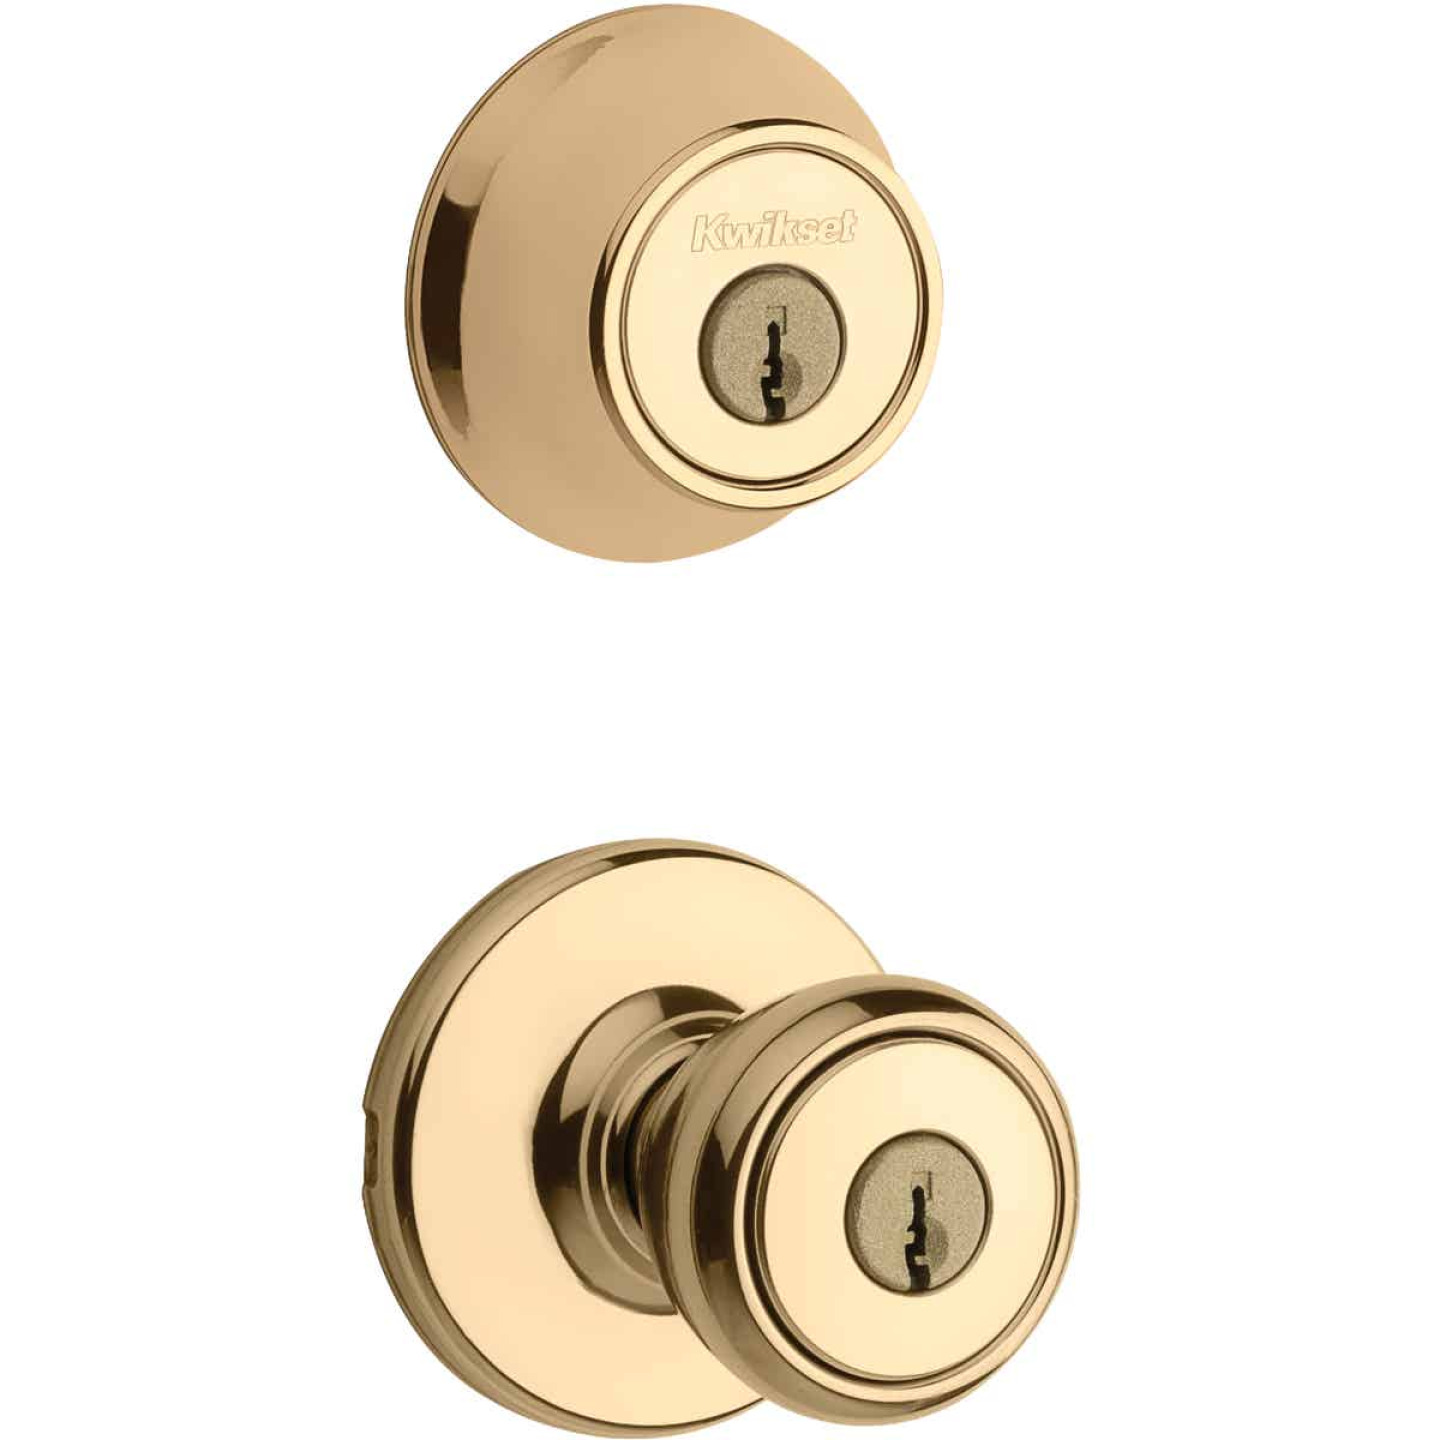 Kwikset Bright Brass Deadbolt and Door Knob Combo Image 1